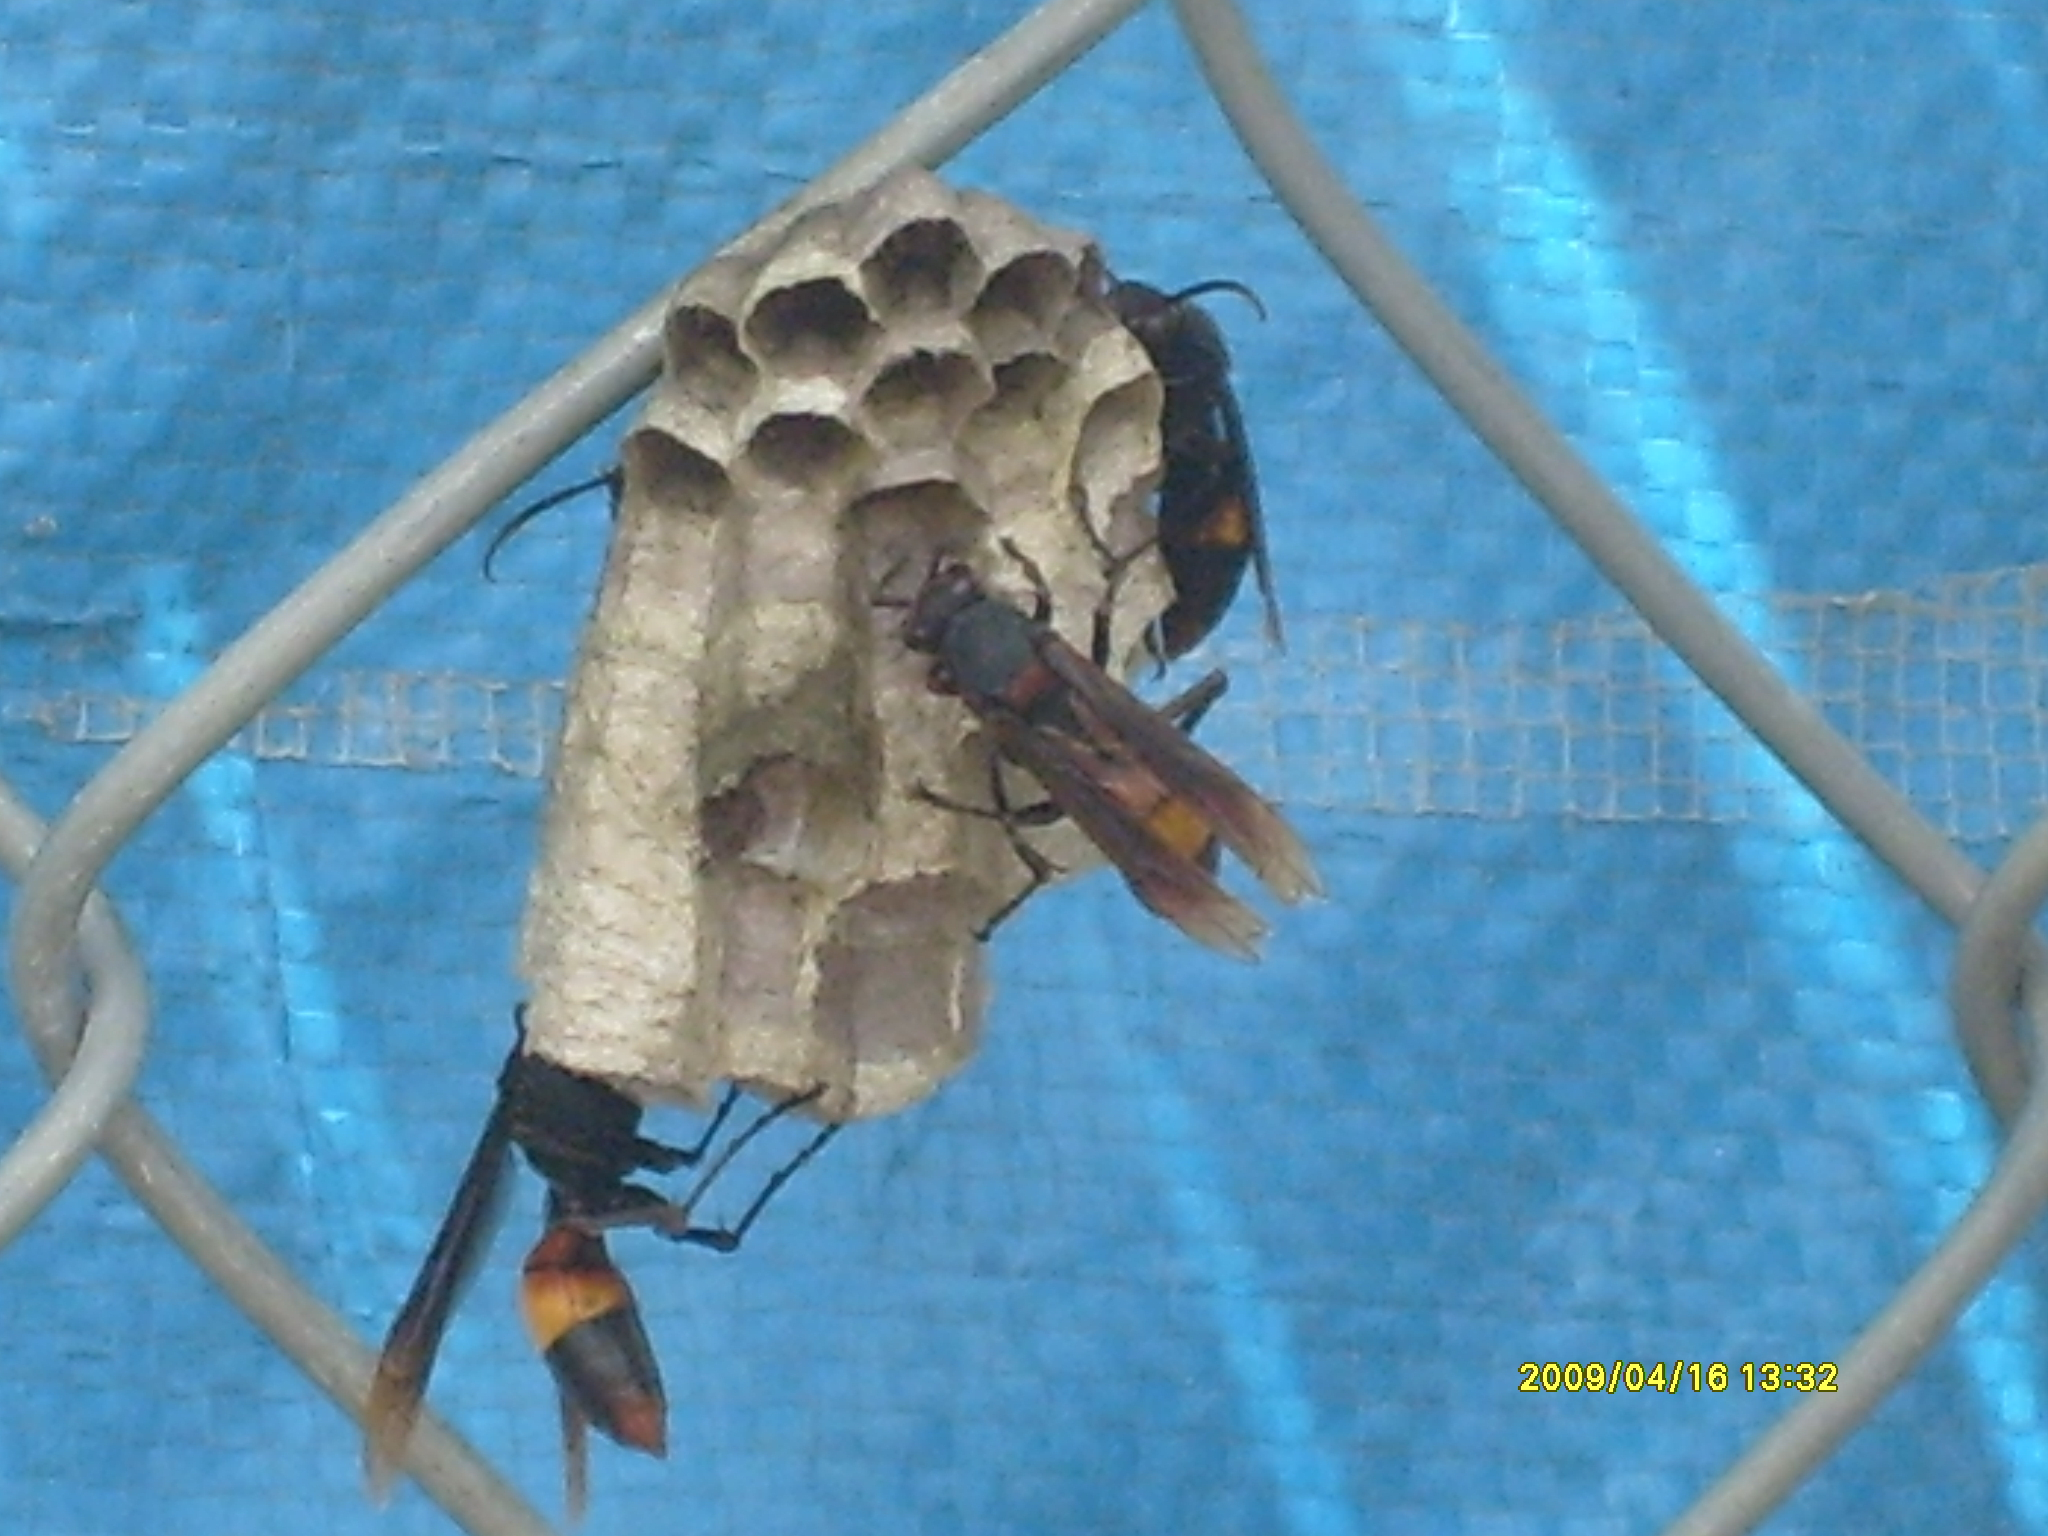 These large wasps are feared by the locals. Their sting is much more painful than the regular wasp or bee, and they are known to be vicious.